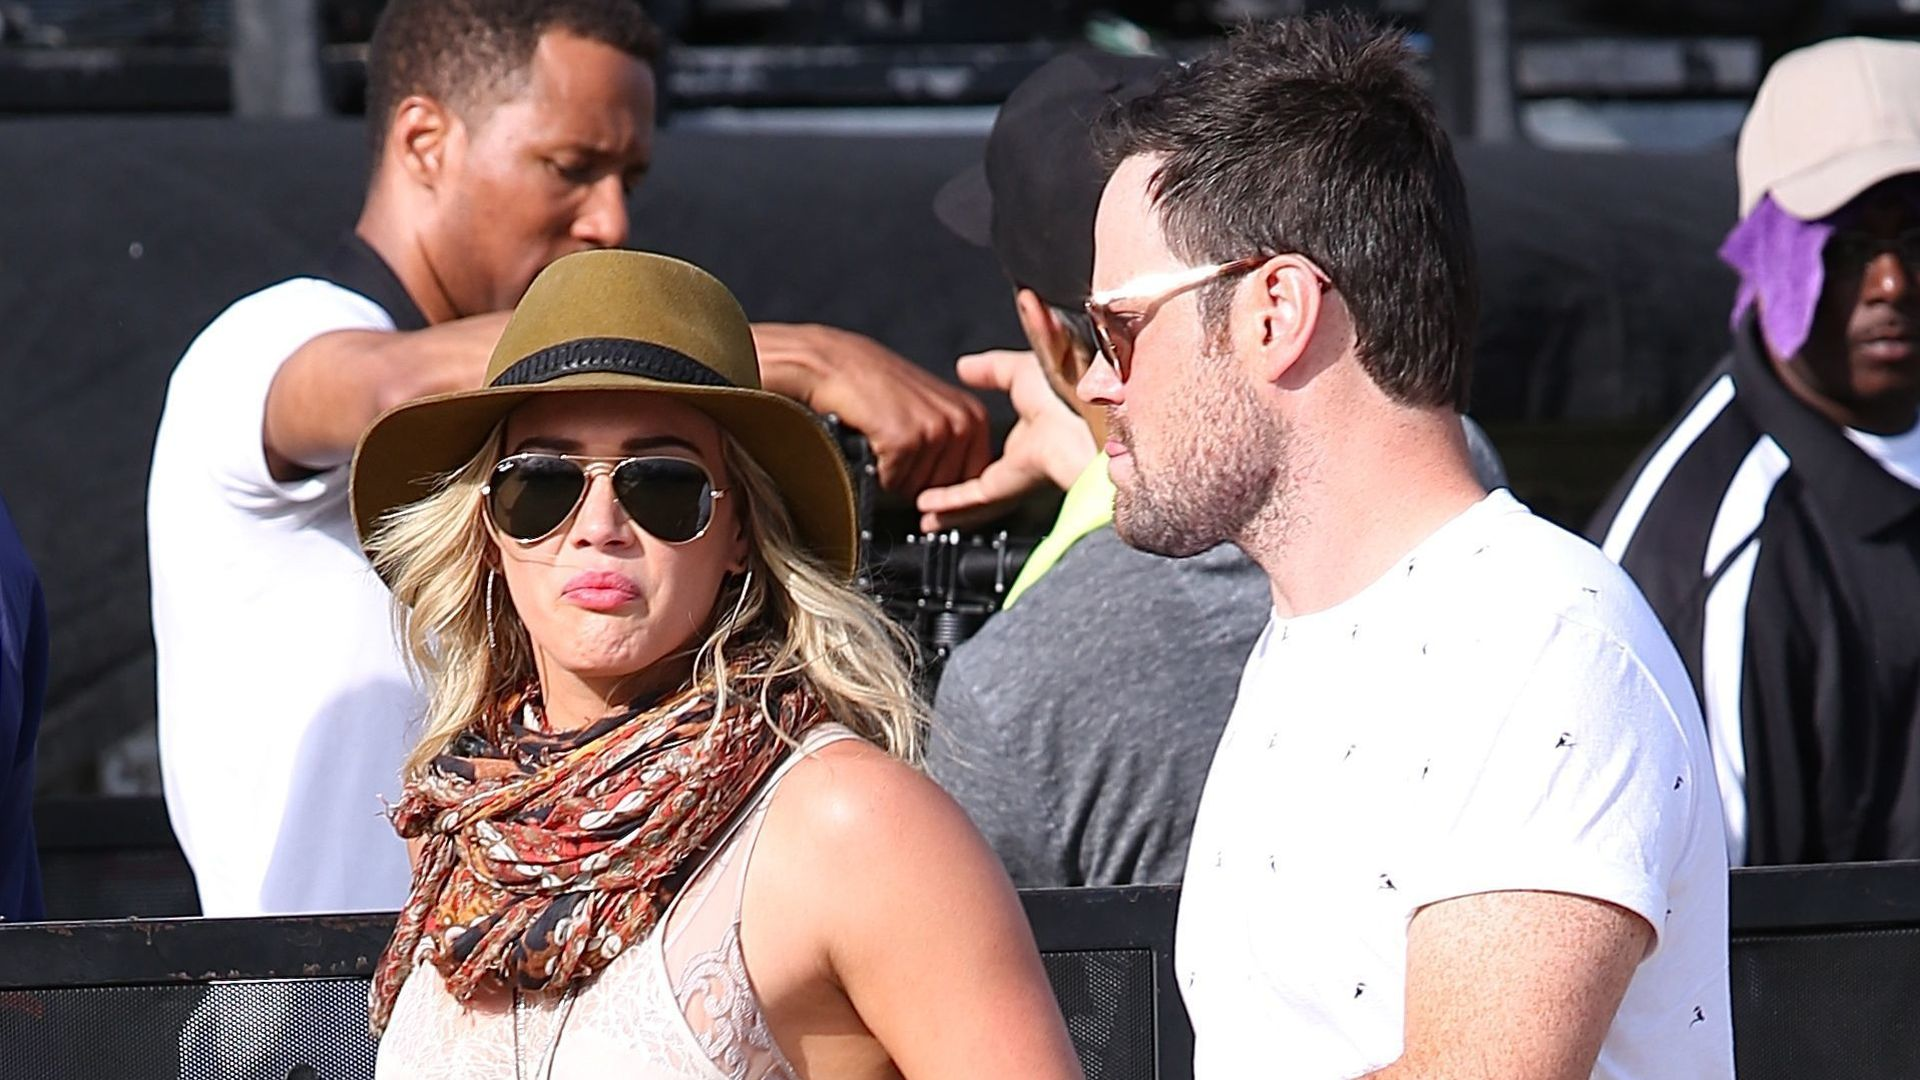 coachella flirt hilary duff ist mit ex unterwegs. Black Bedroom Furniture Sets. Home Design Ideas